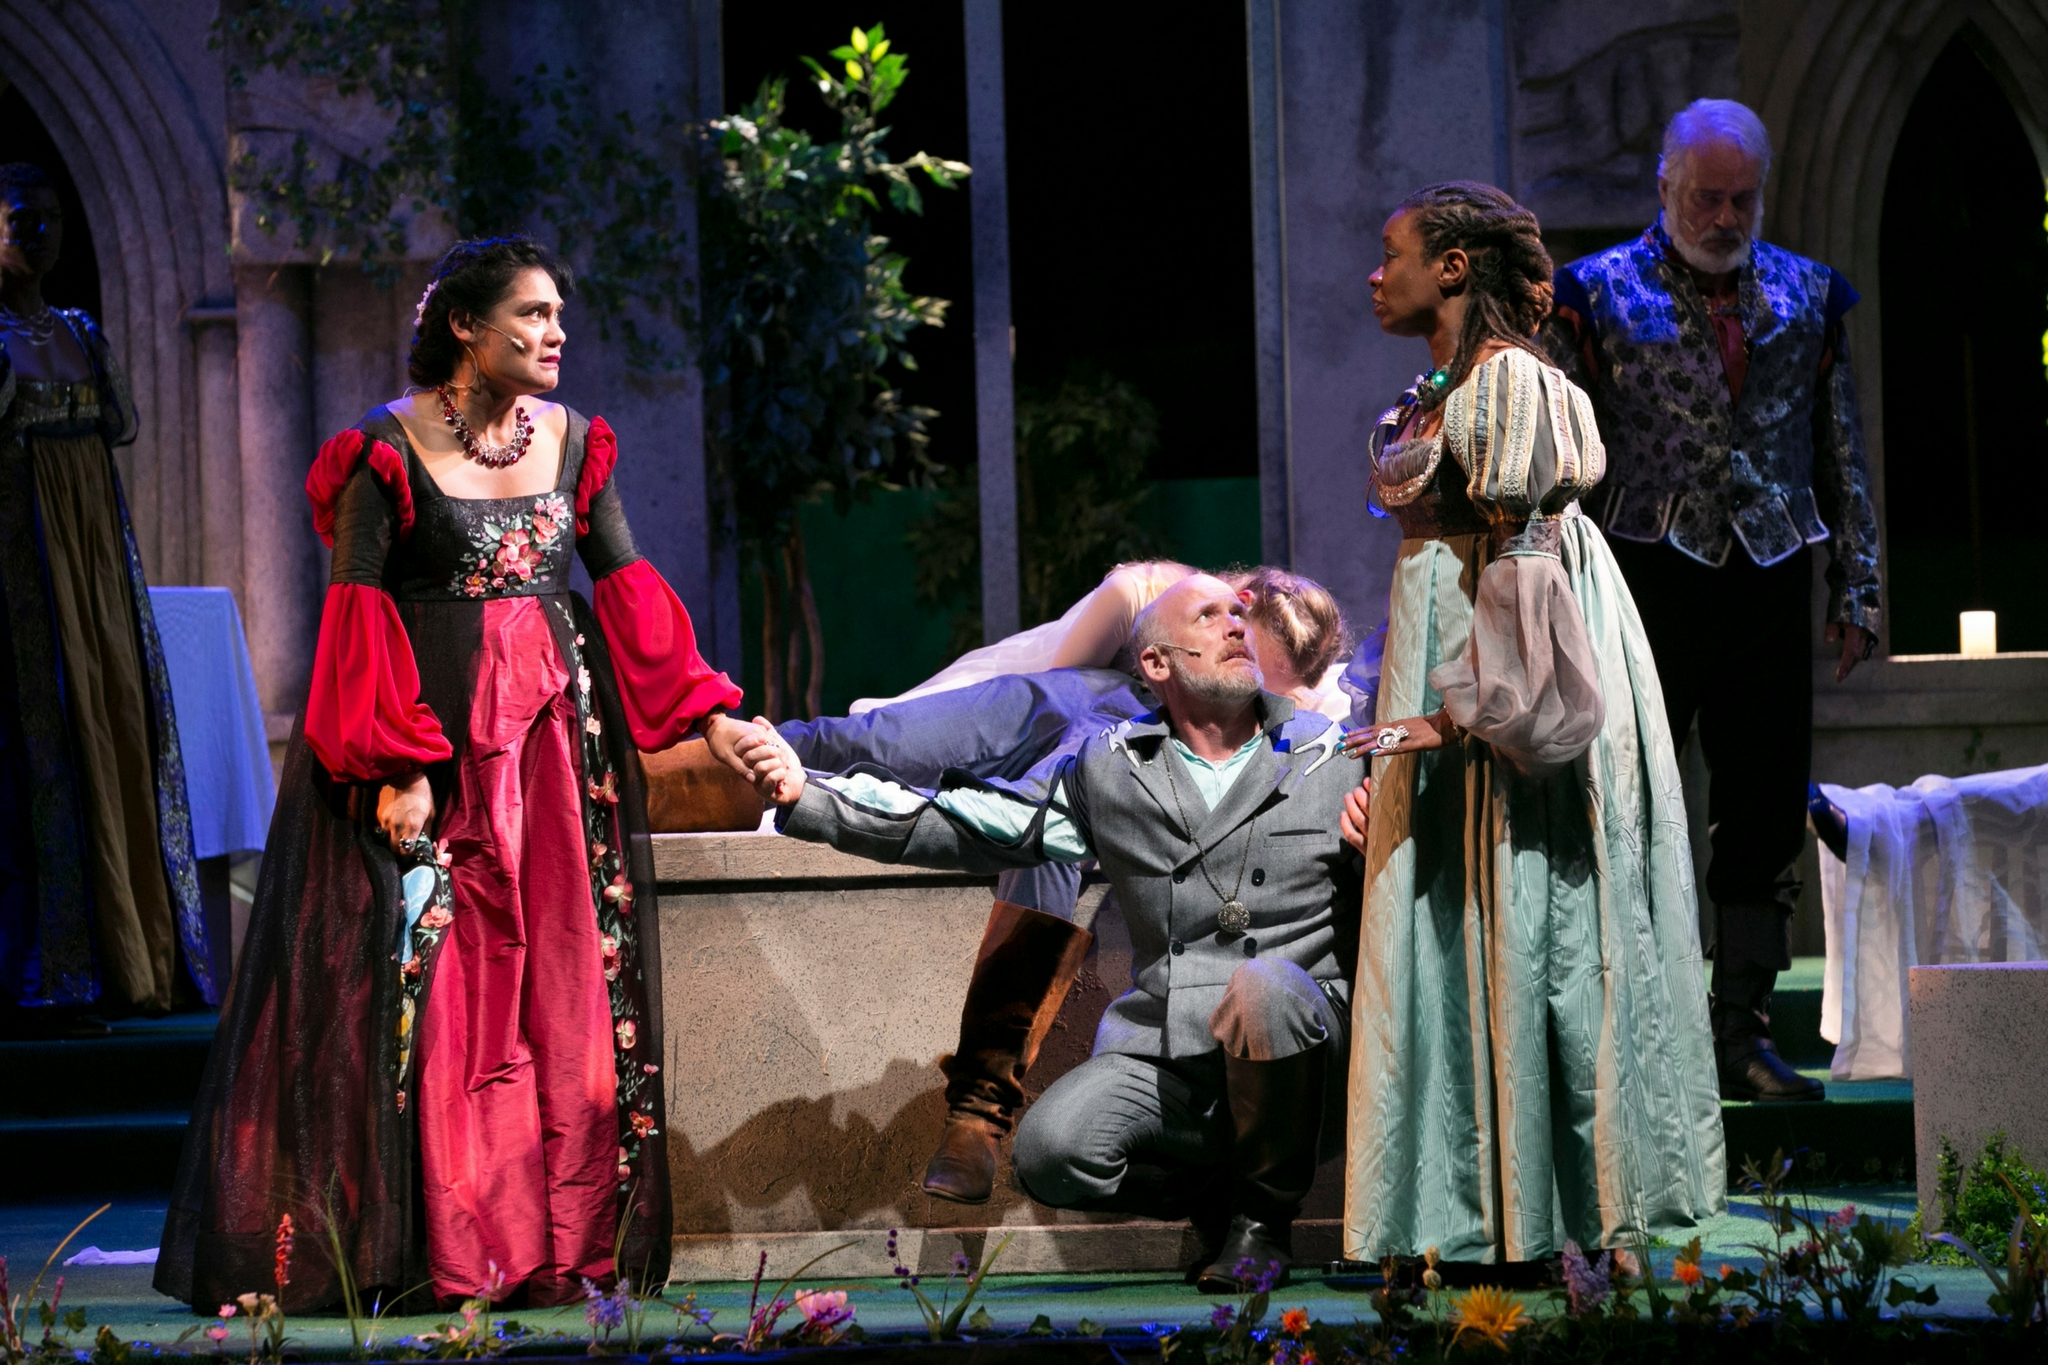 Celeste Oliva (Lady Capulet), Mark Soucy (Lord Montague), and Chris Everett (Lady Montague) in Romeo & Juliet, Shakespeare on the Common 2017-Photo by Evgenia Eliseeva